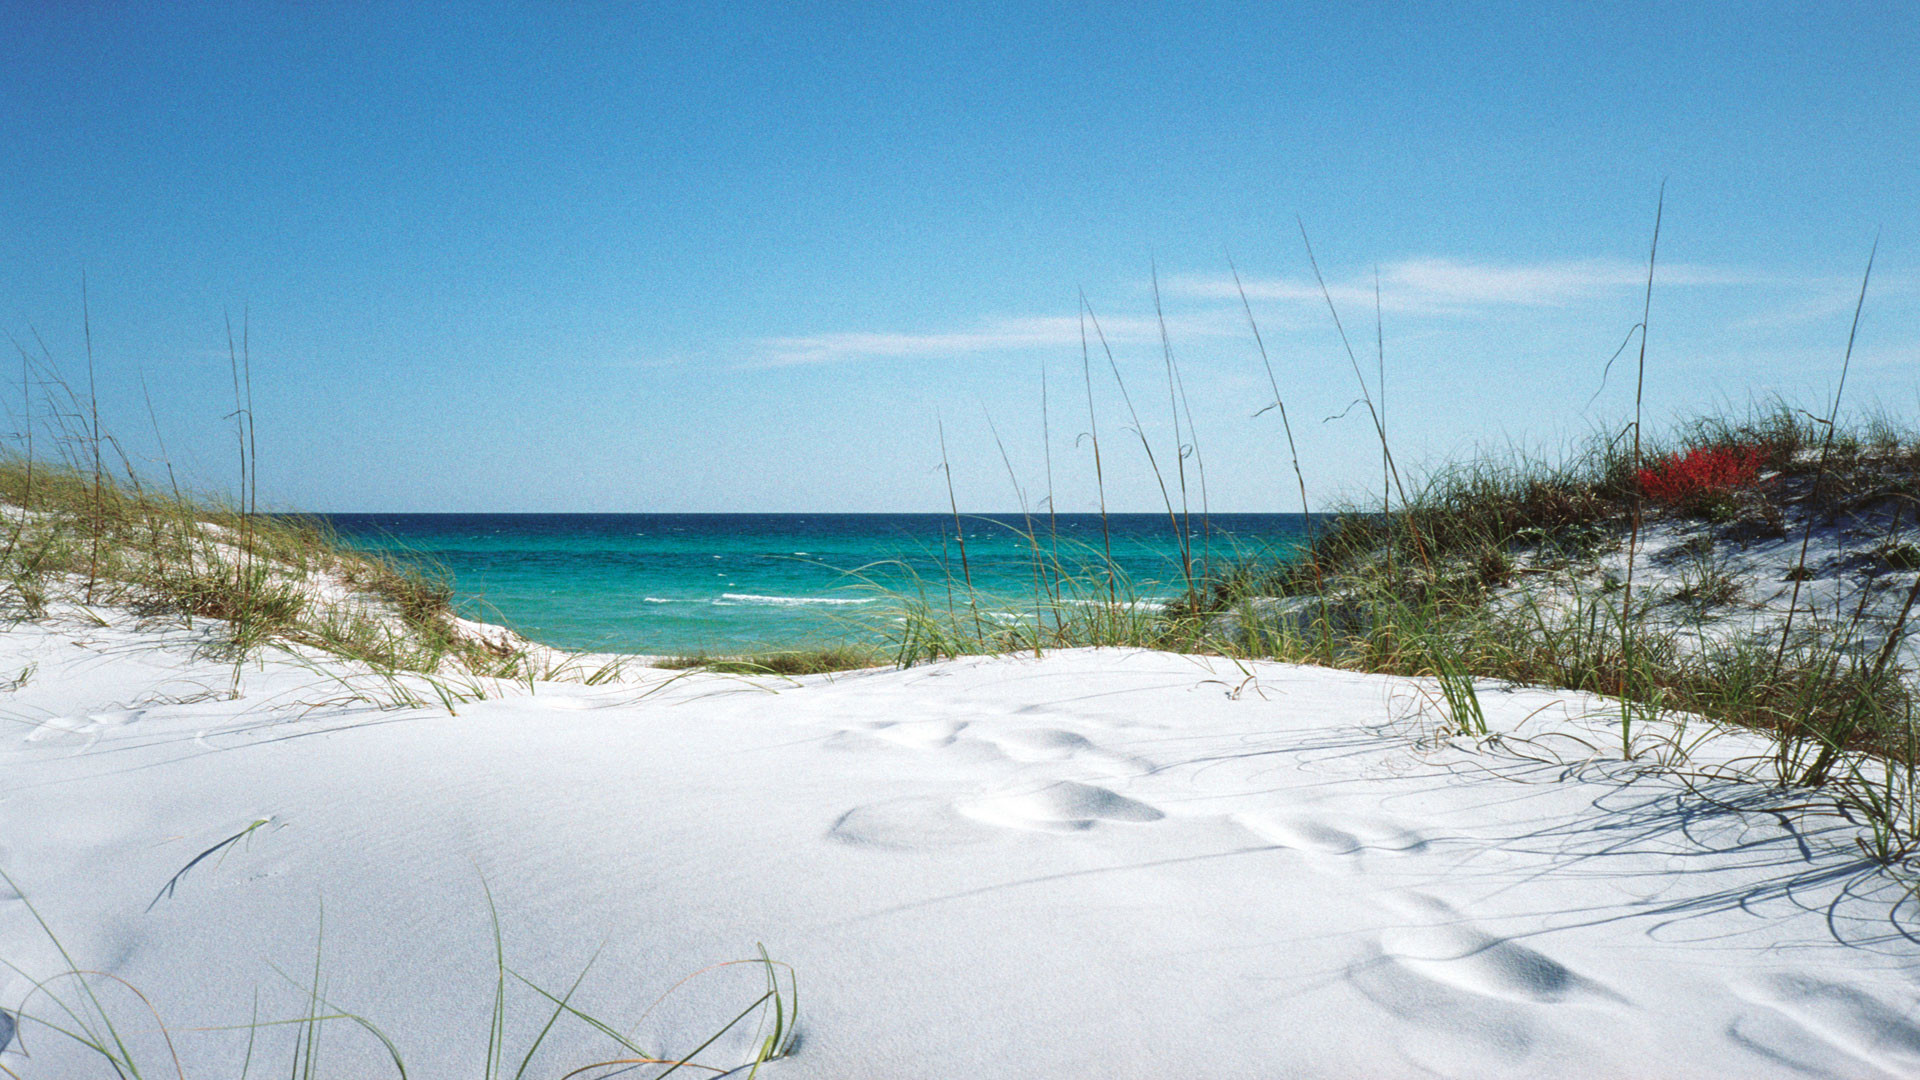 1920x1080 Florida Beaches Wallpaper For Android #Ocg